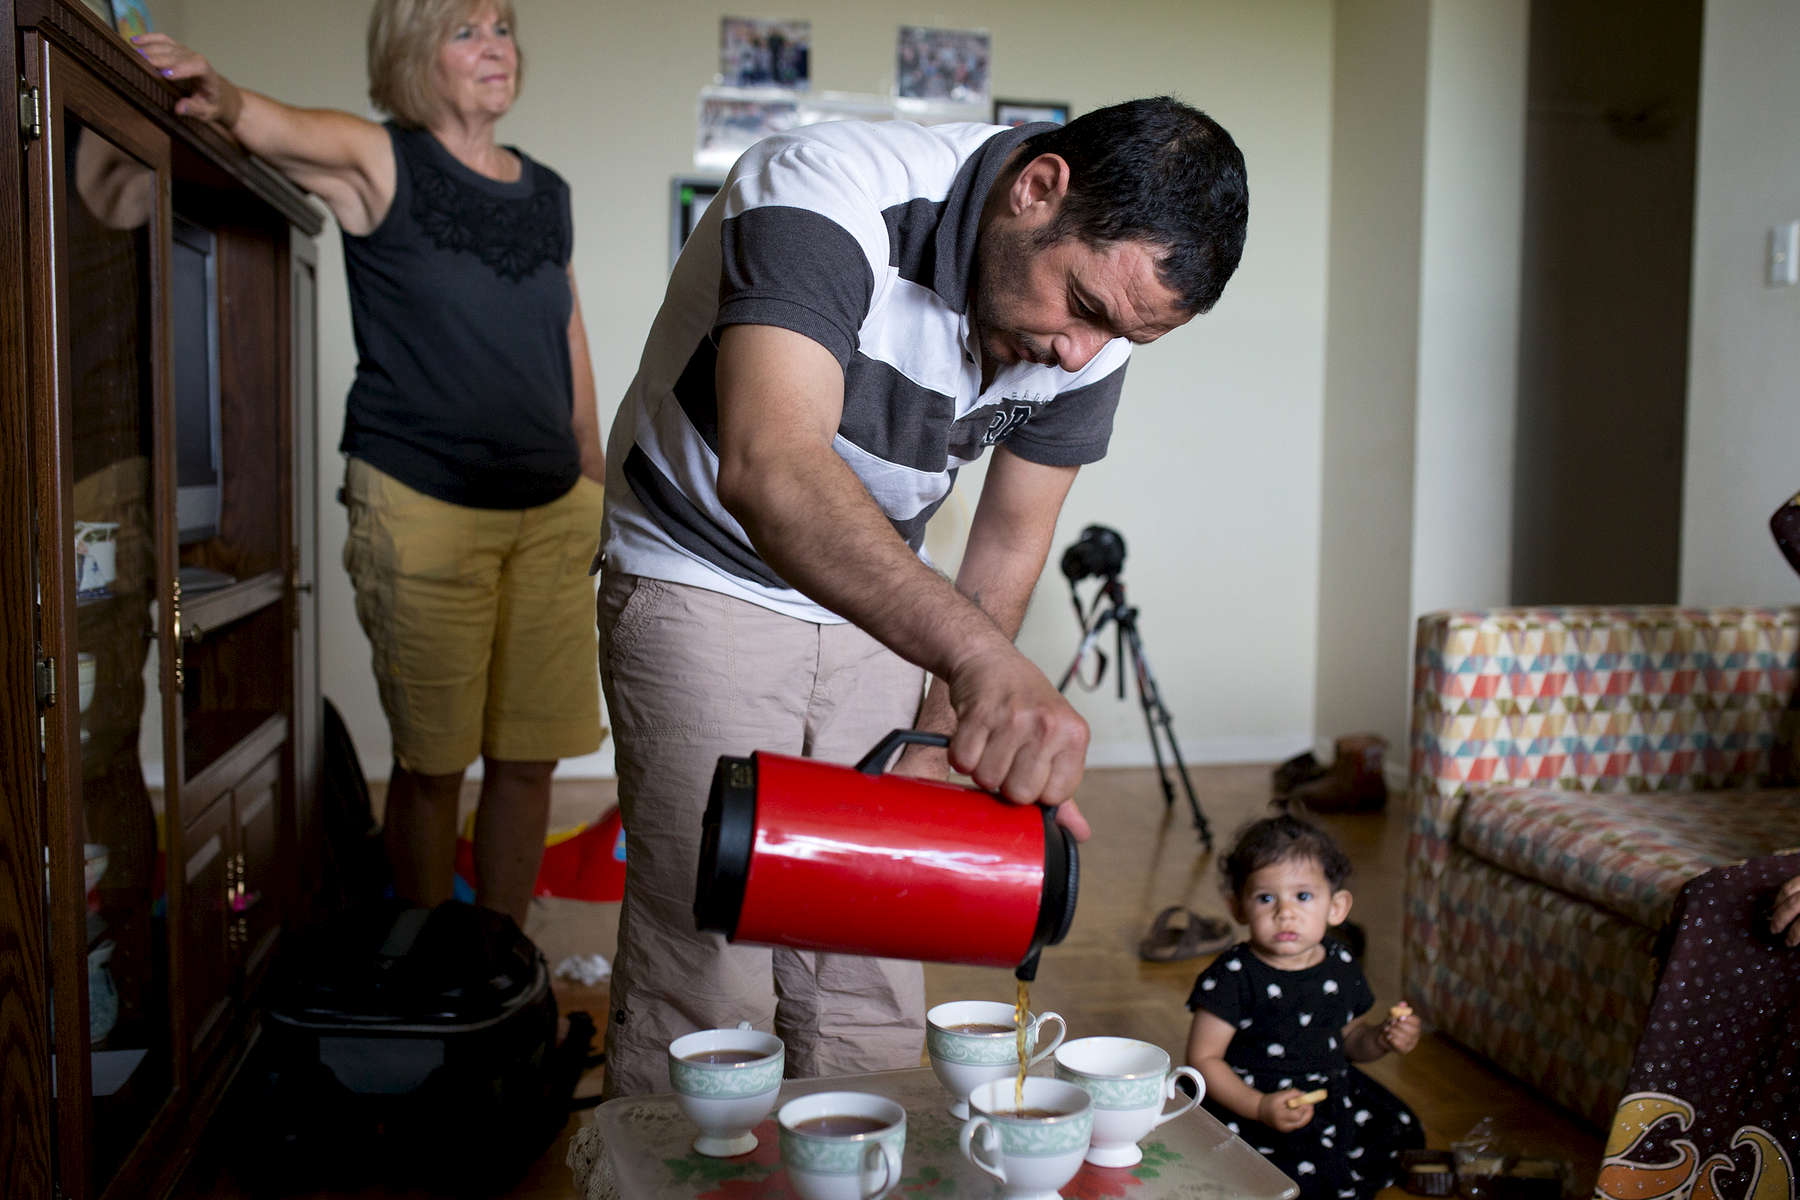 Mouhamed pours tea in his family home in Toronto.